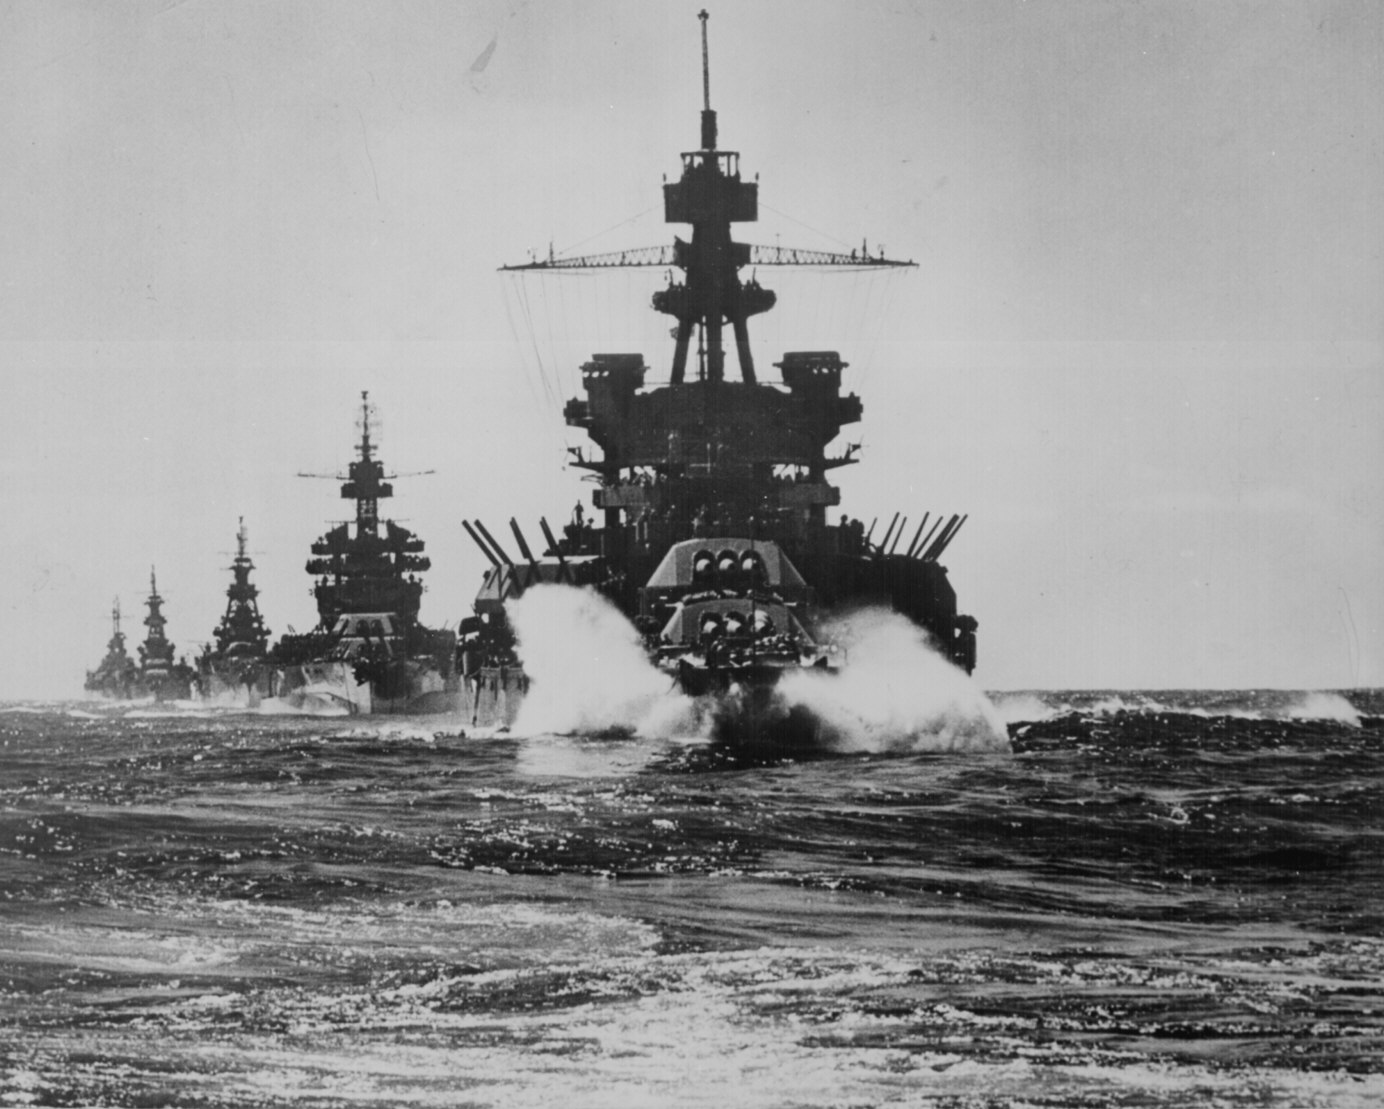 USS Pennsylvania and a Colorado-class battleship followed by three cruisers in Lingayen Gulf preceding the landing on Luzon, Philippines, January 1945. (U.S. Navy Photo/National Archives)